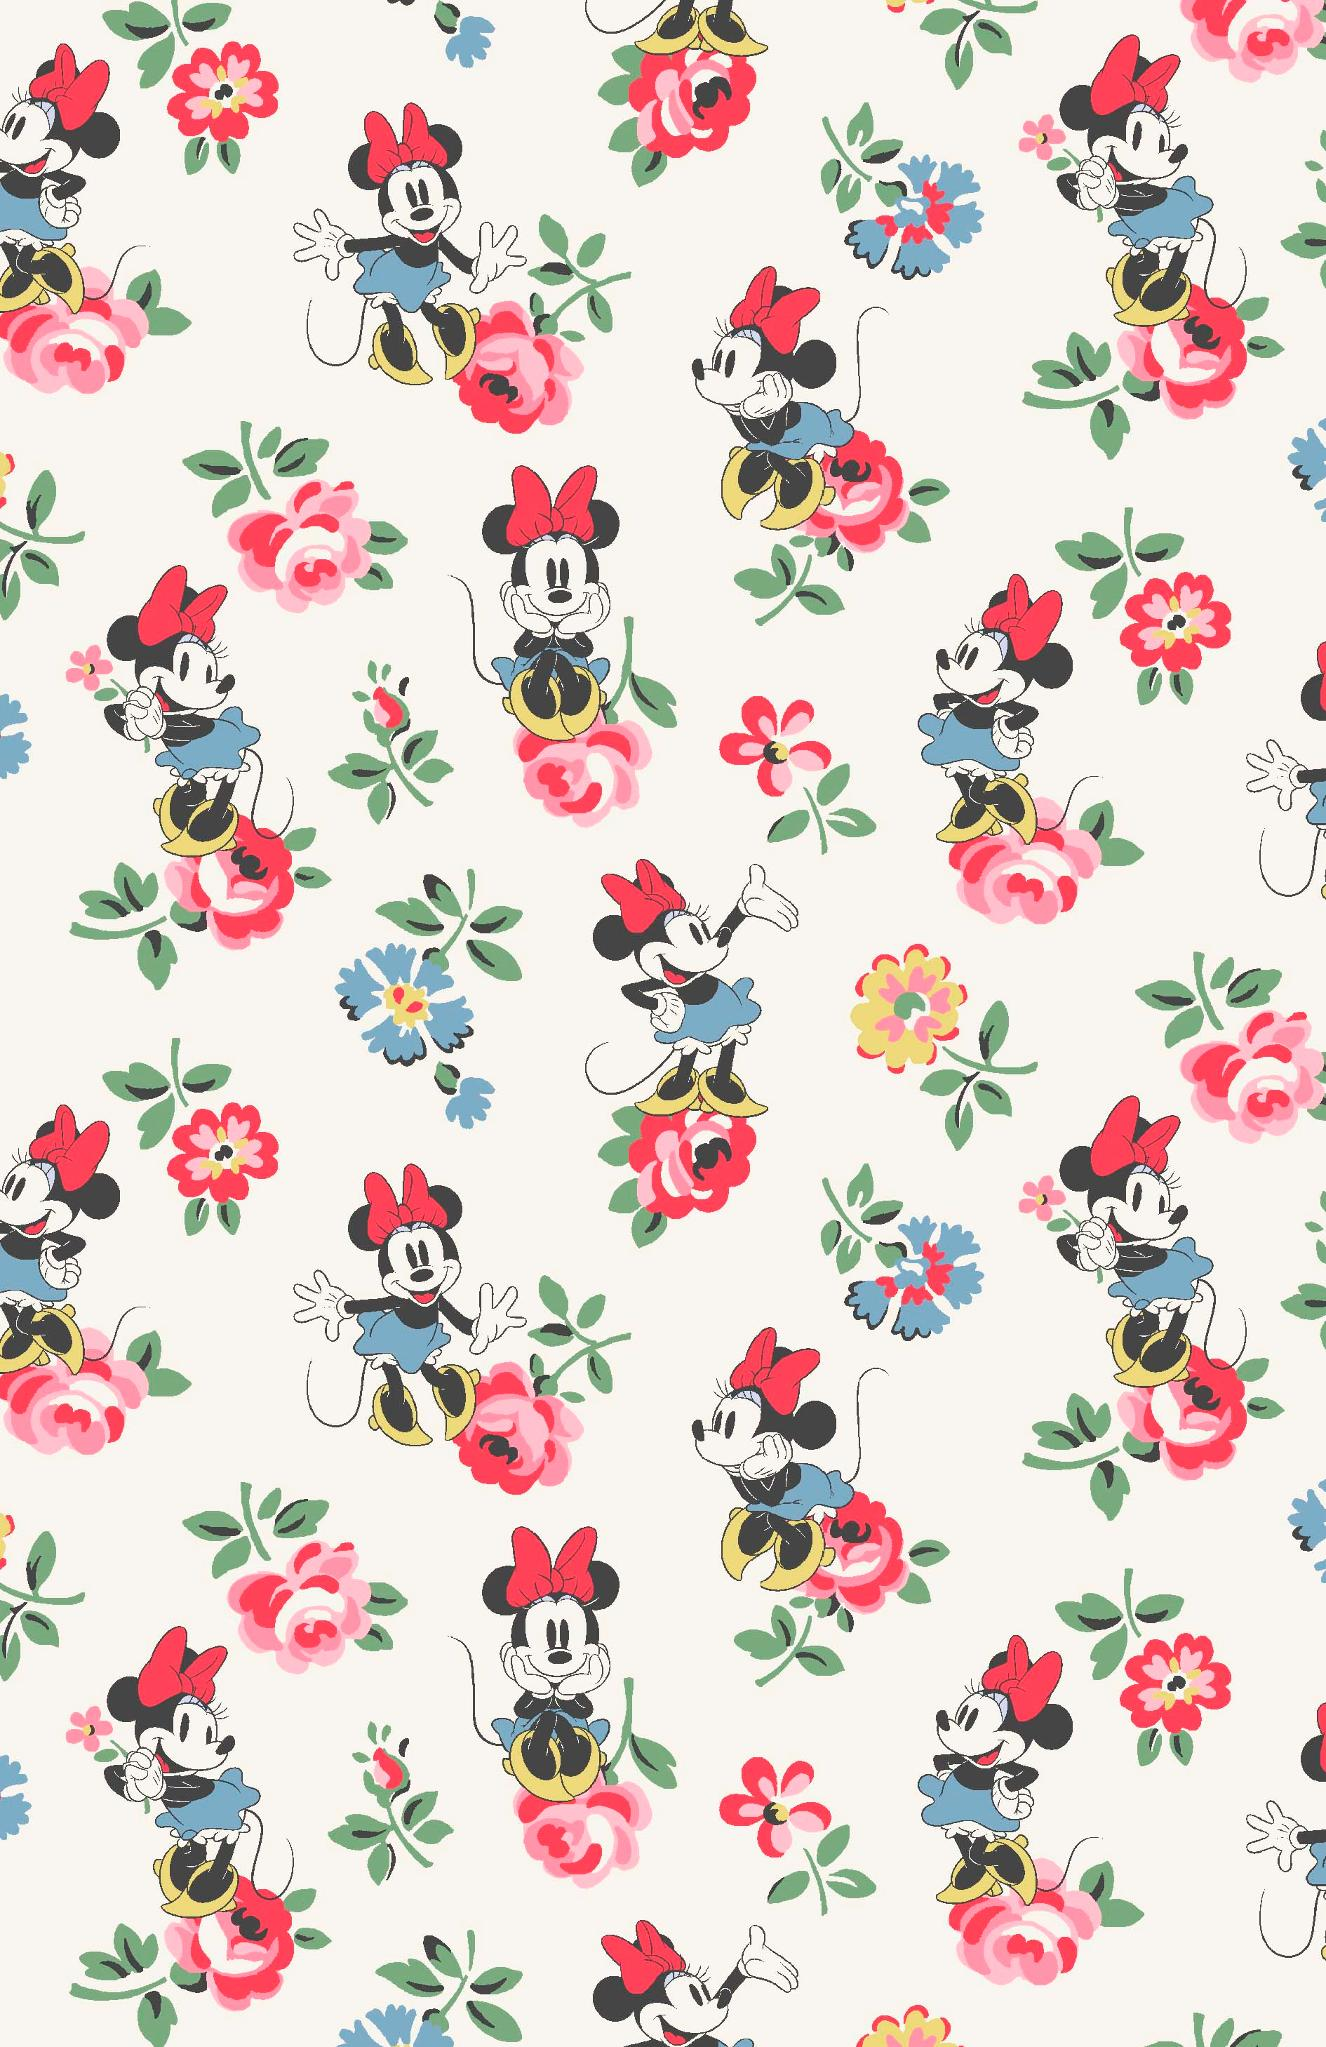 1326x2047 Minnie Mouse Wallpaper Iphone, Hd Wallpapers & backgrounds ...